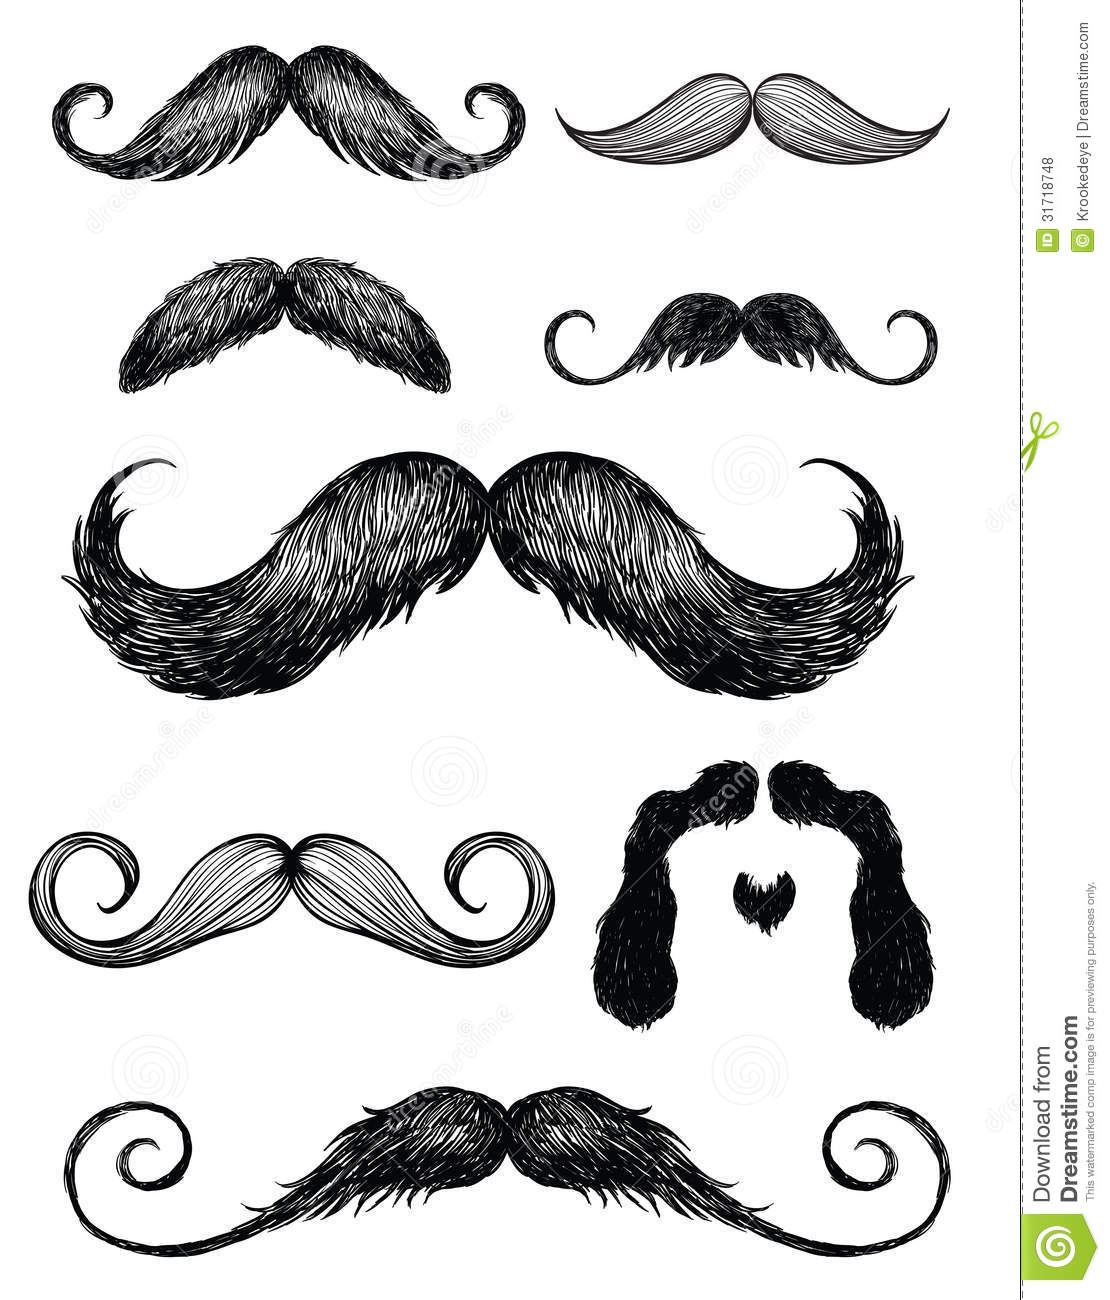 Pencil thin mustache clipart png freeuse download Hand Drawn Mustache Set 2 Royalty Free Stock Photos - Image: 31718748 png freeuse download